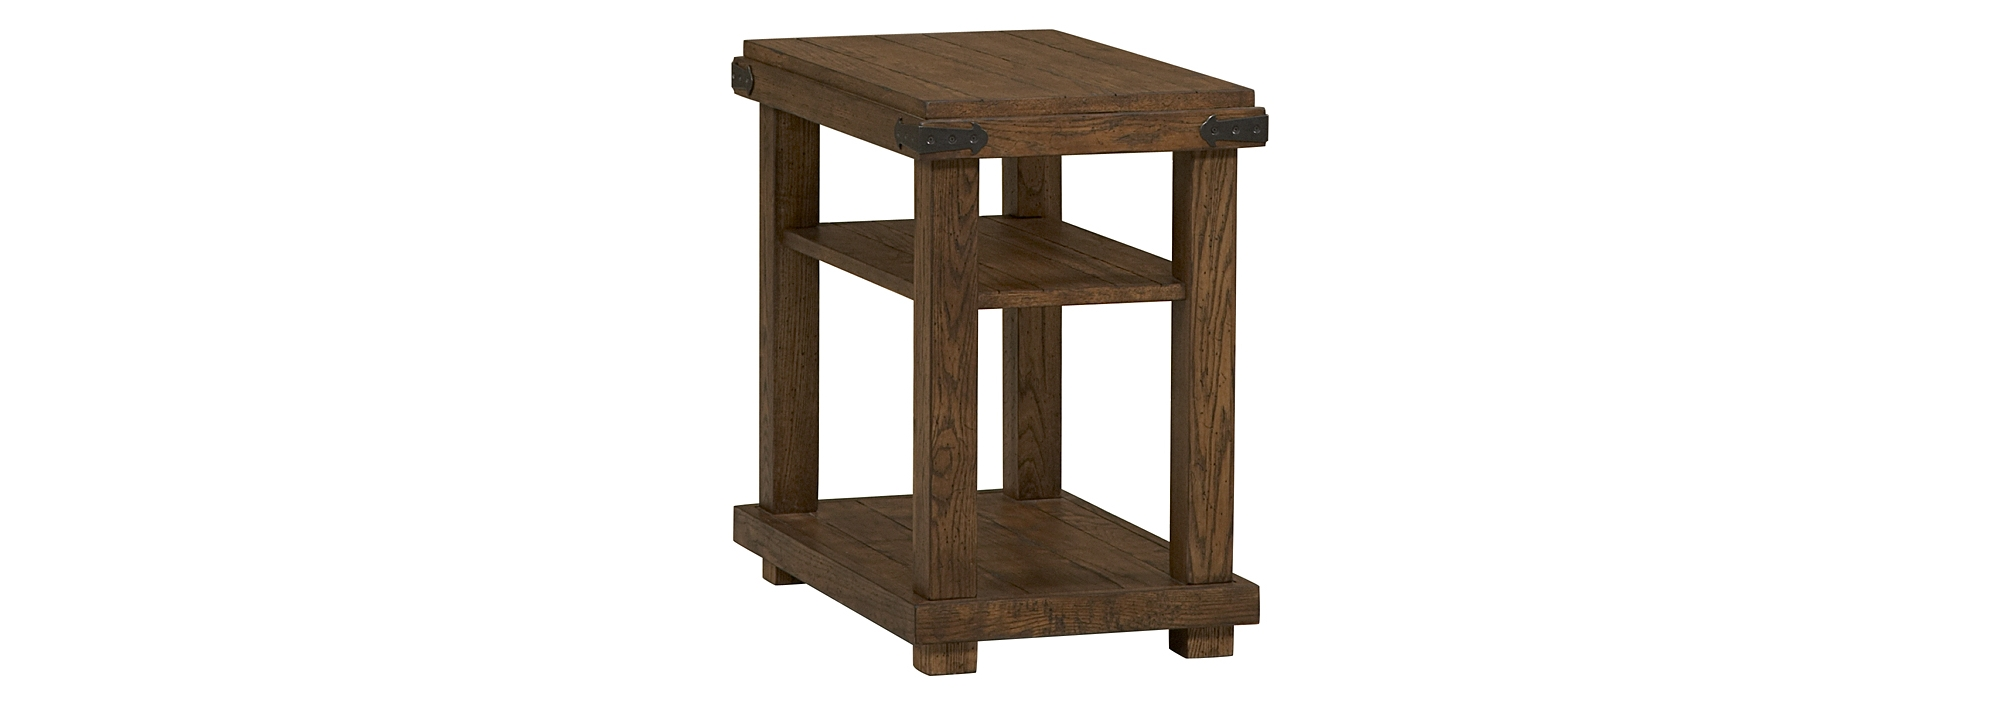 100 havertys rustic dining room table 100 havertys kitchen